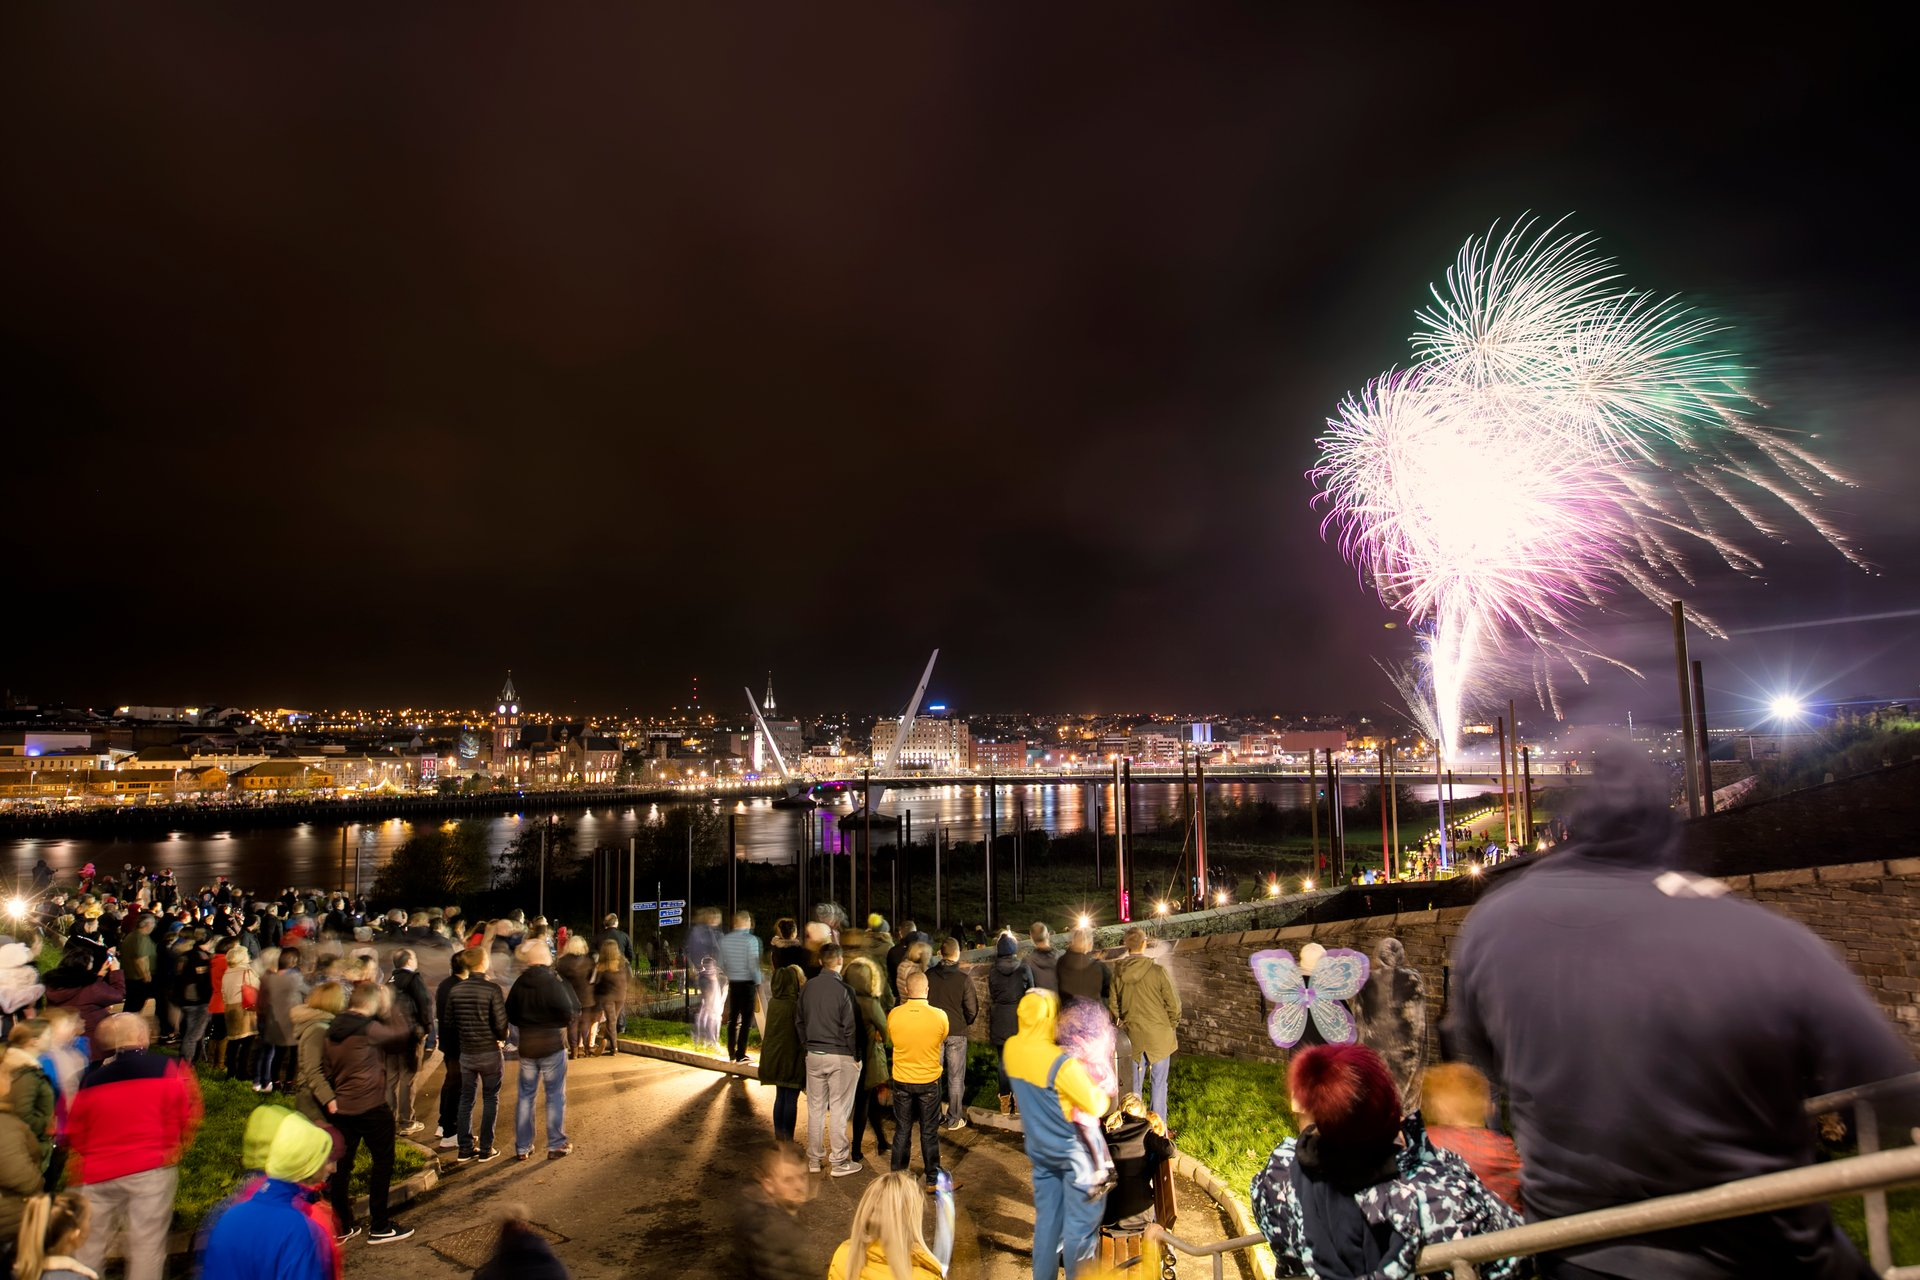 Fireworks of Derry Halloween 2020